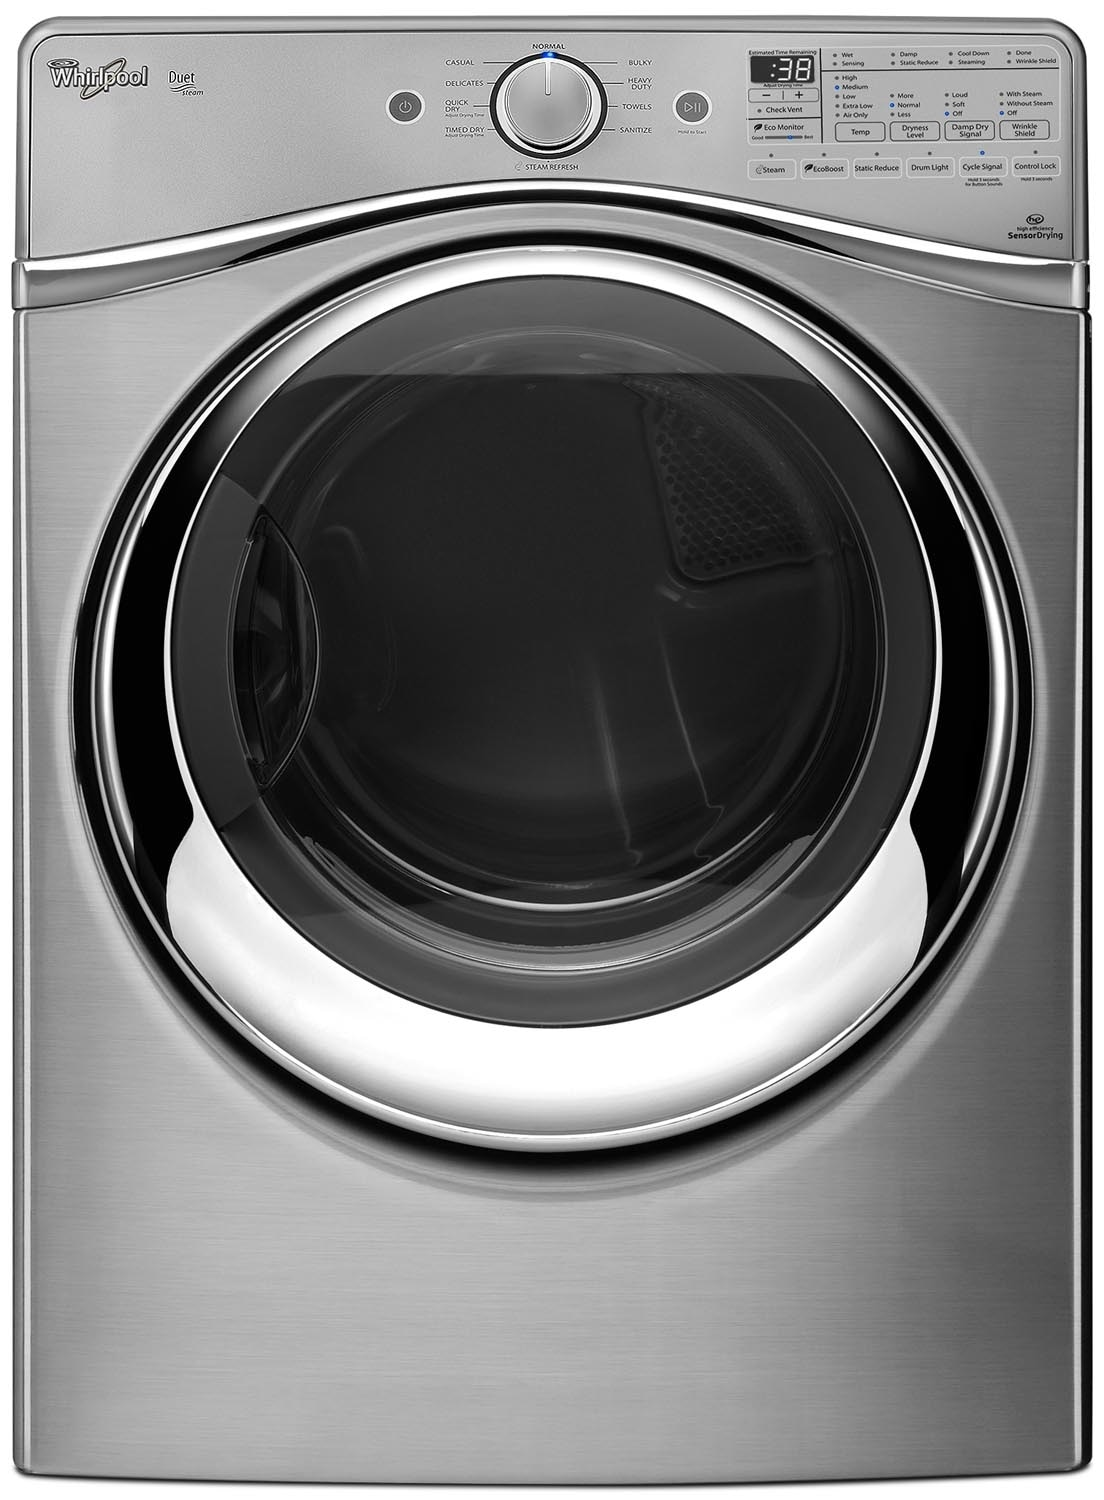 Washers and Dryers - Whirlpool Gas Dryer (7.3 Cu. Ft.) WGD97HEDU